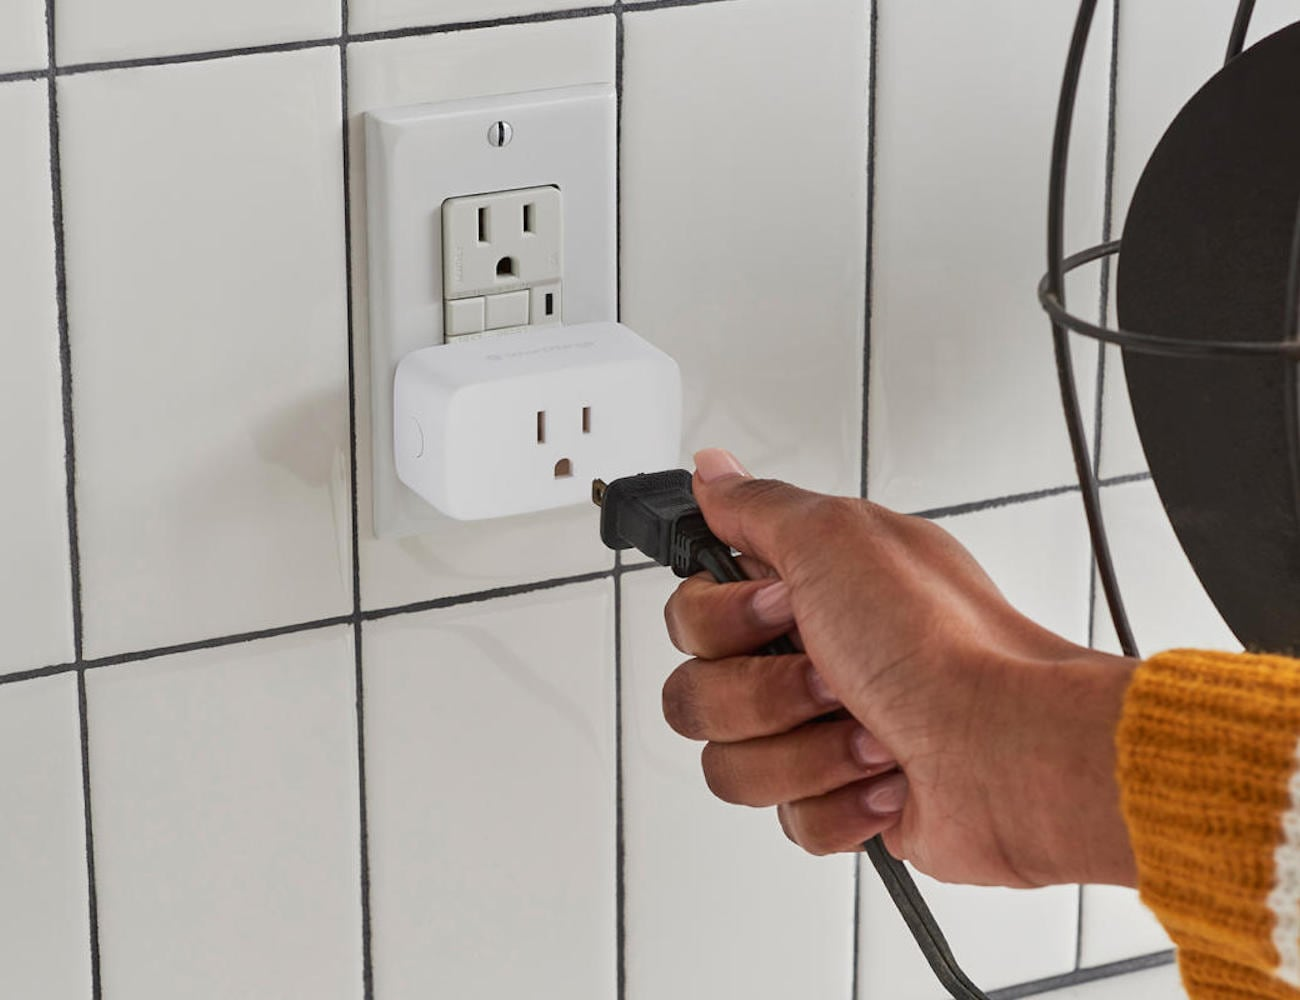 Samsung SmartThings Wifi Smart Plug lets you control your favorite devices from your phone